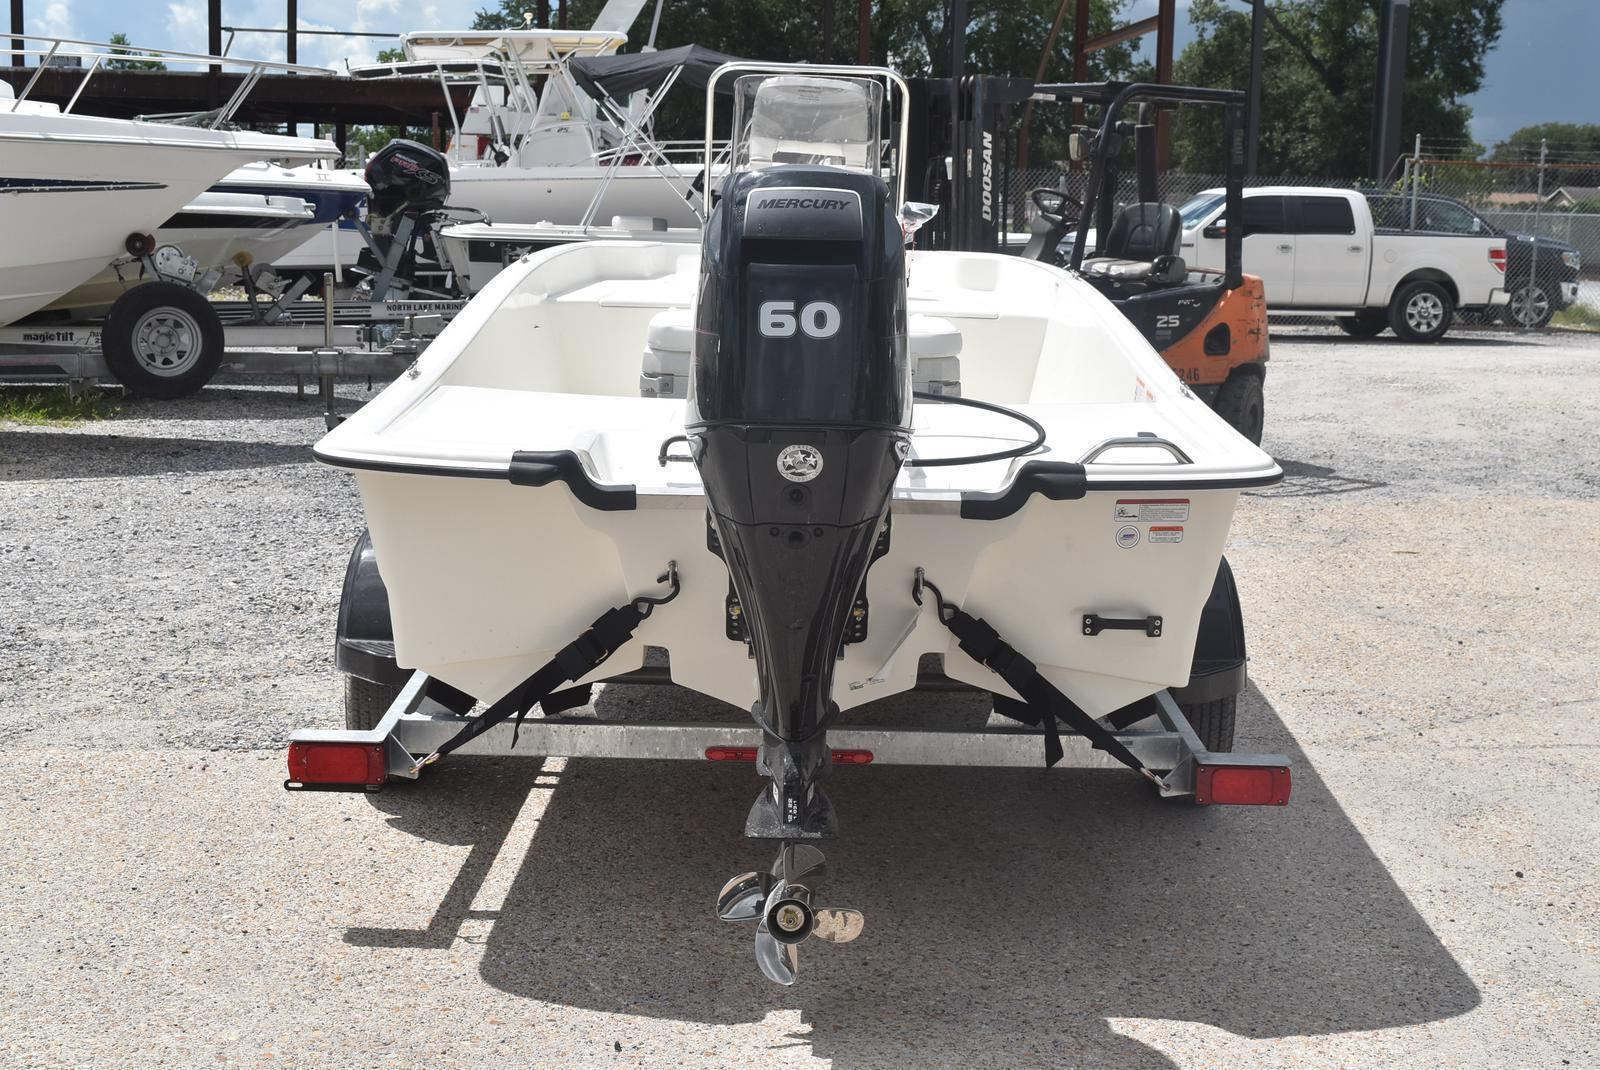 2020 Mako boat for sale, model of the boat is Pro Skiff 17, 75 ELPT & Image # 588 of 702